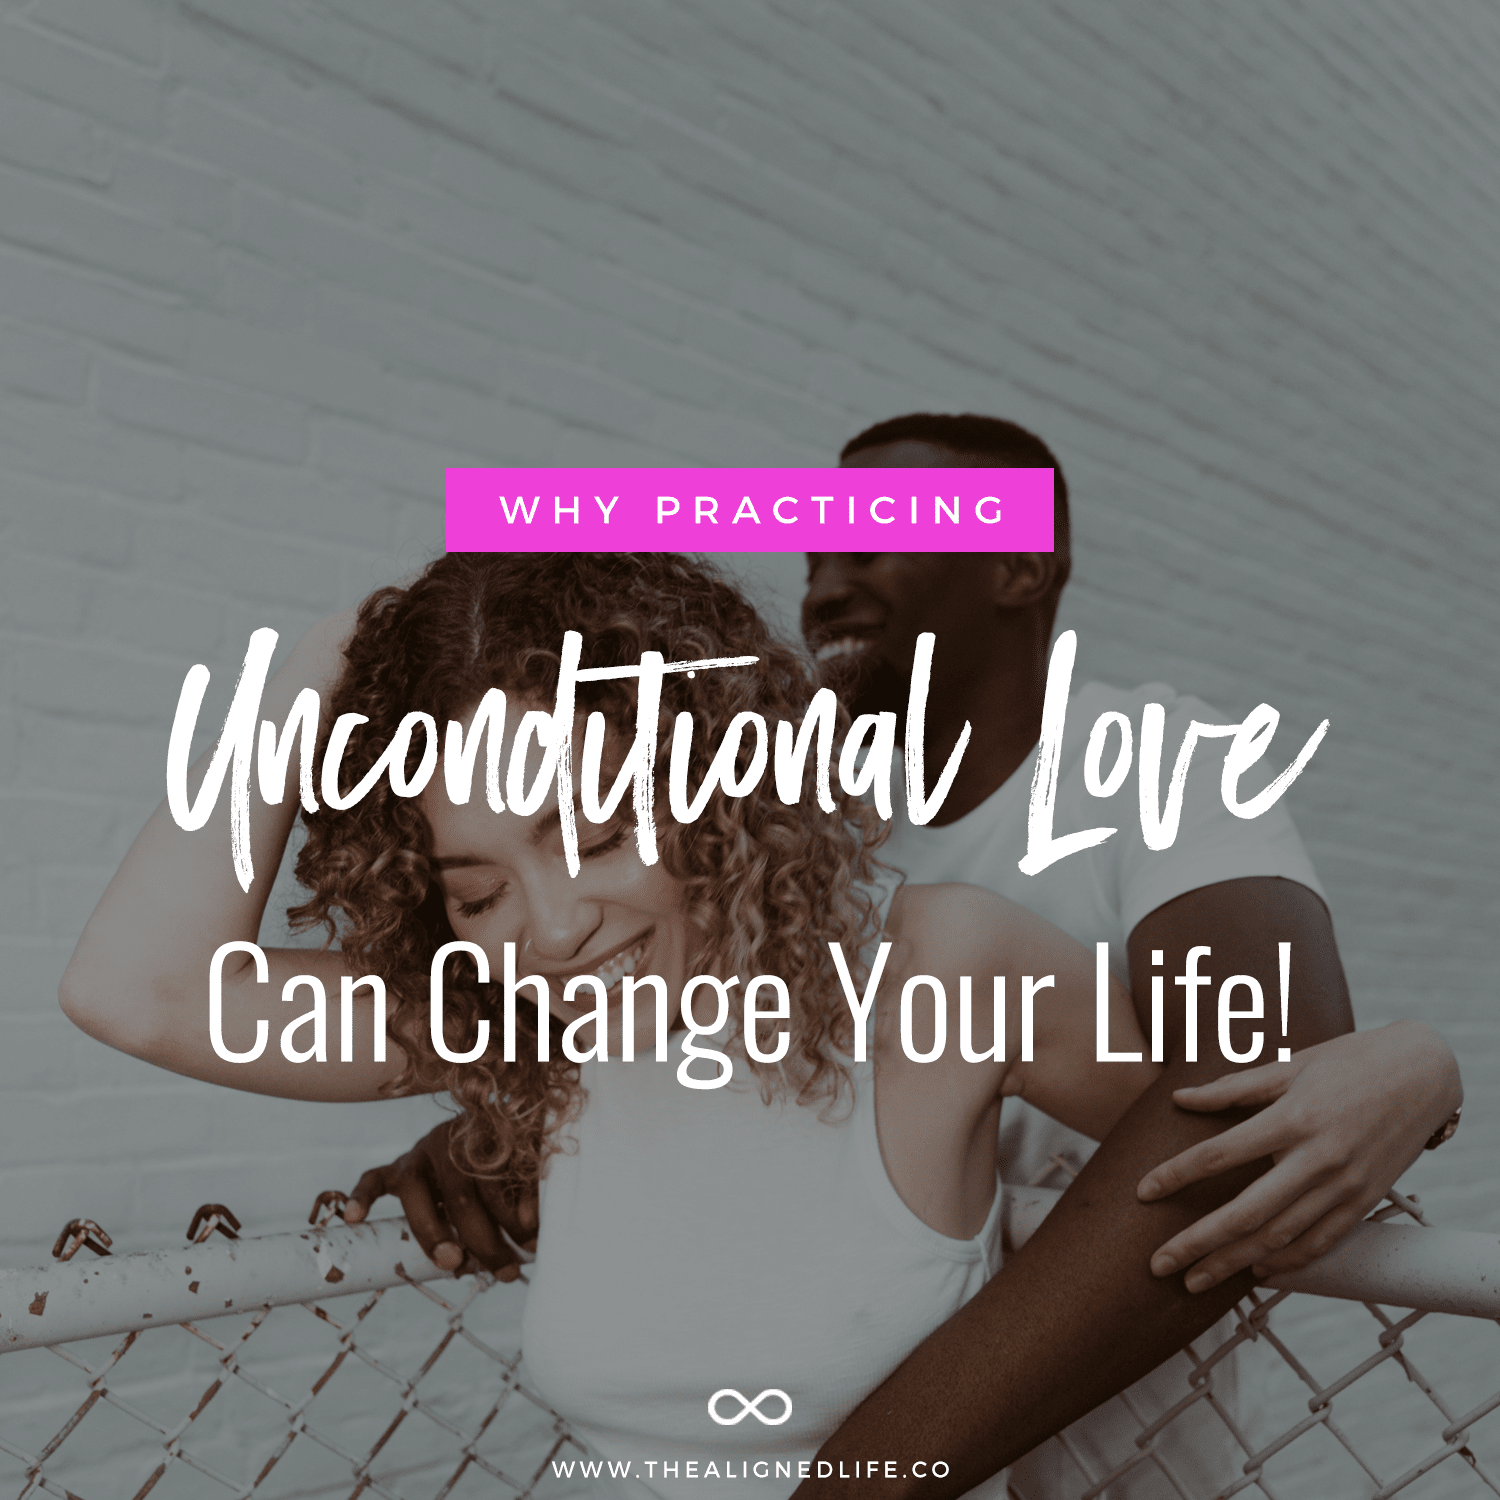 Why Practicing Unconditional Love Can Change Your Life